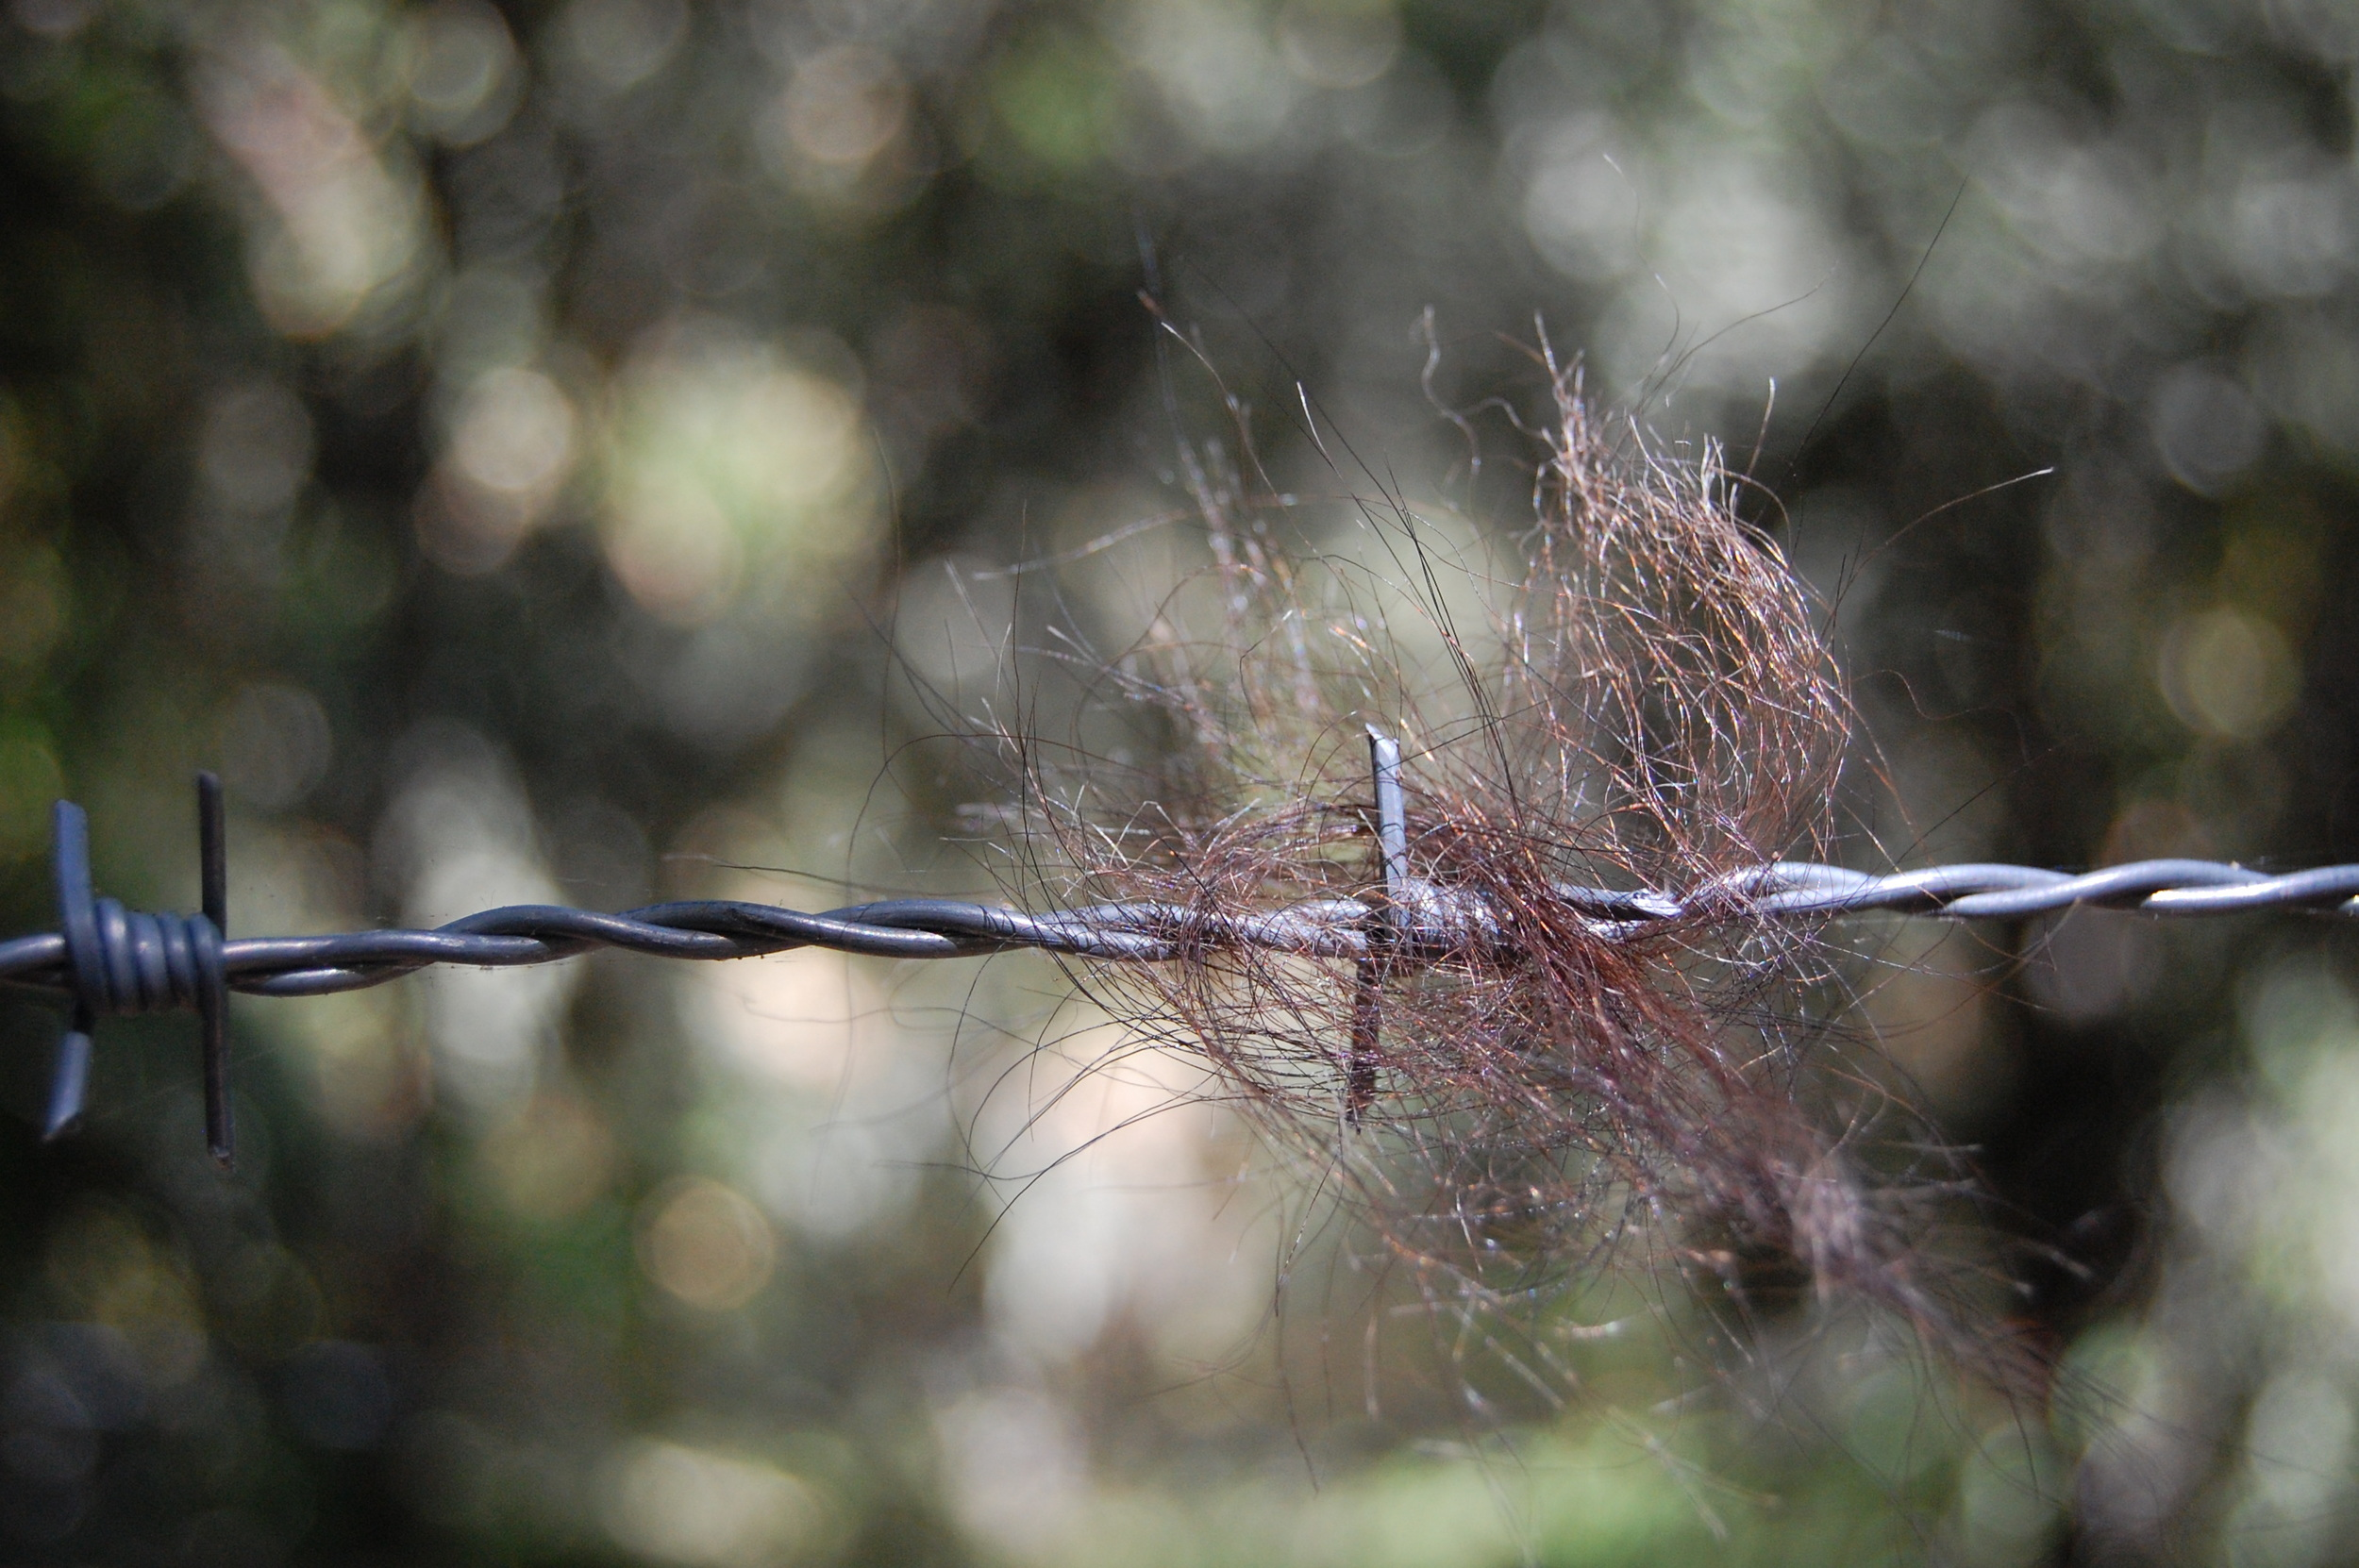 Hair on the barbed wire corral.